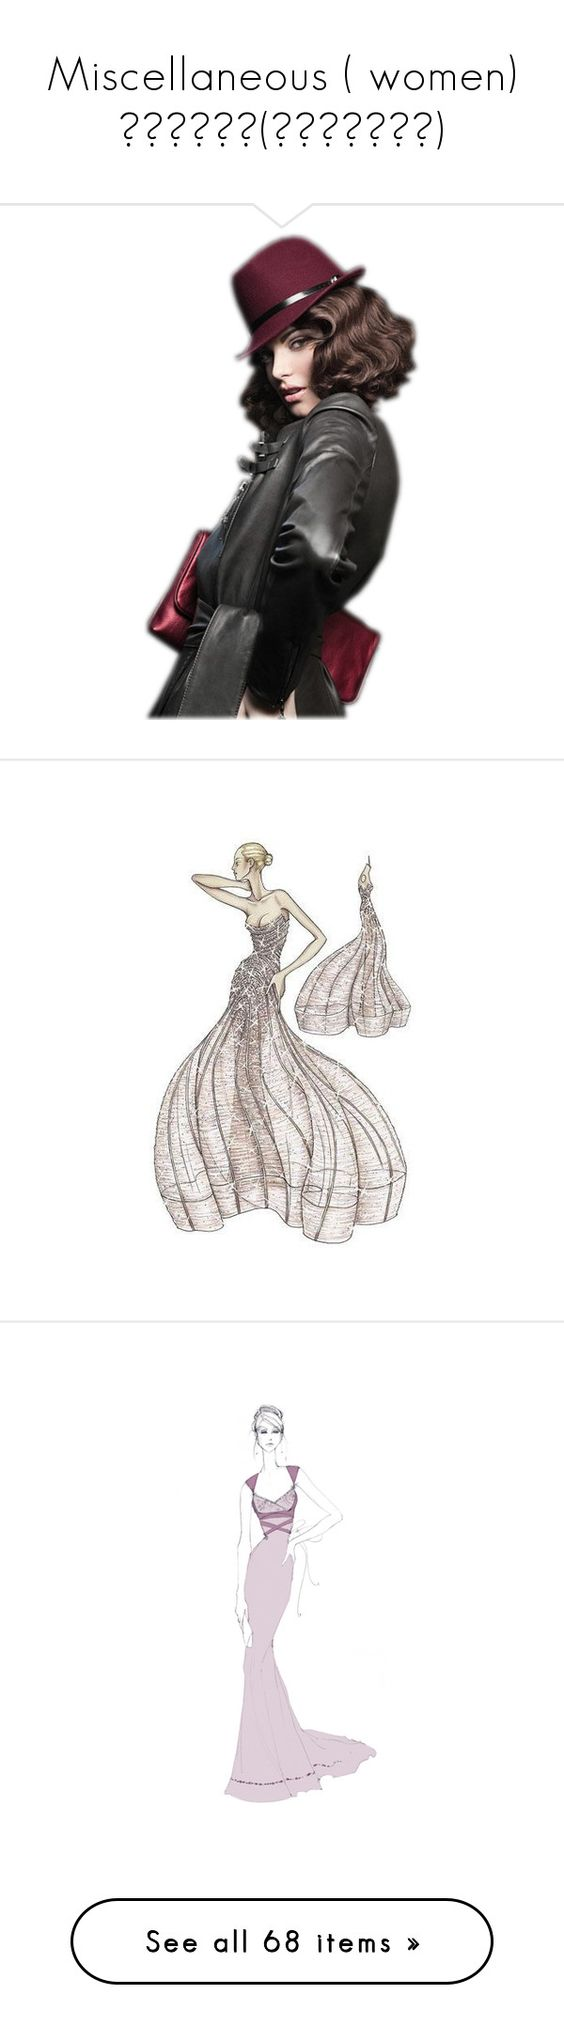 """""""Miscellaneous ( women) разное(девушки)"""" by xxxdajixxx on Polyvore featuring sketches, drawing, fashion sketches, backgrounds, models, drawings, art, fashion illustration, dresses и people"""